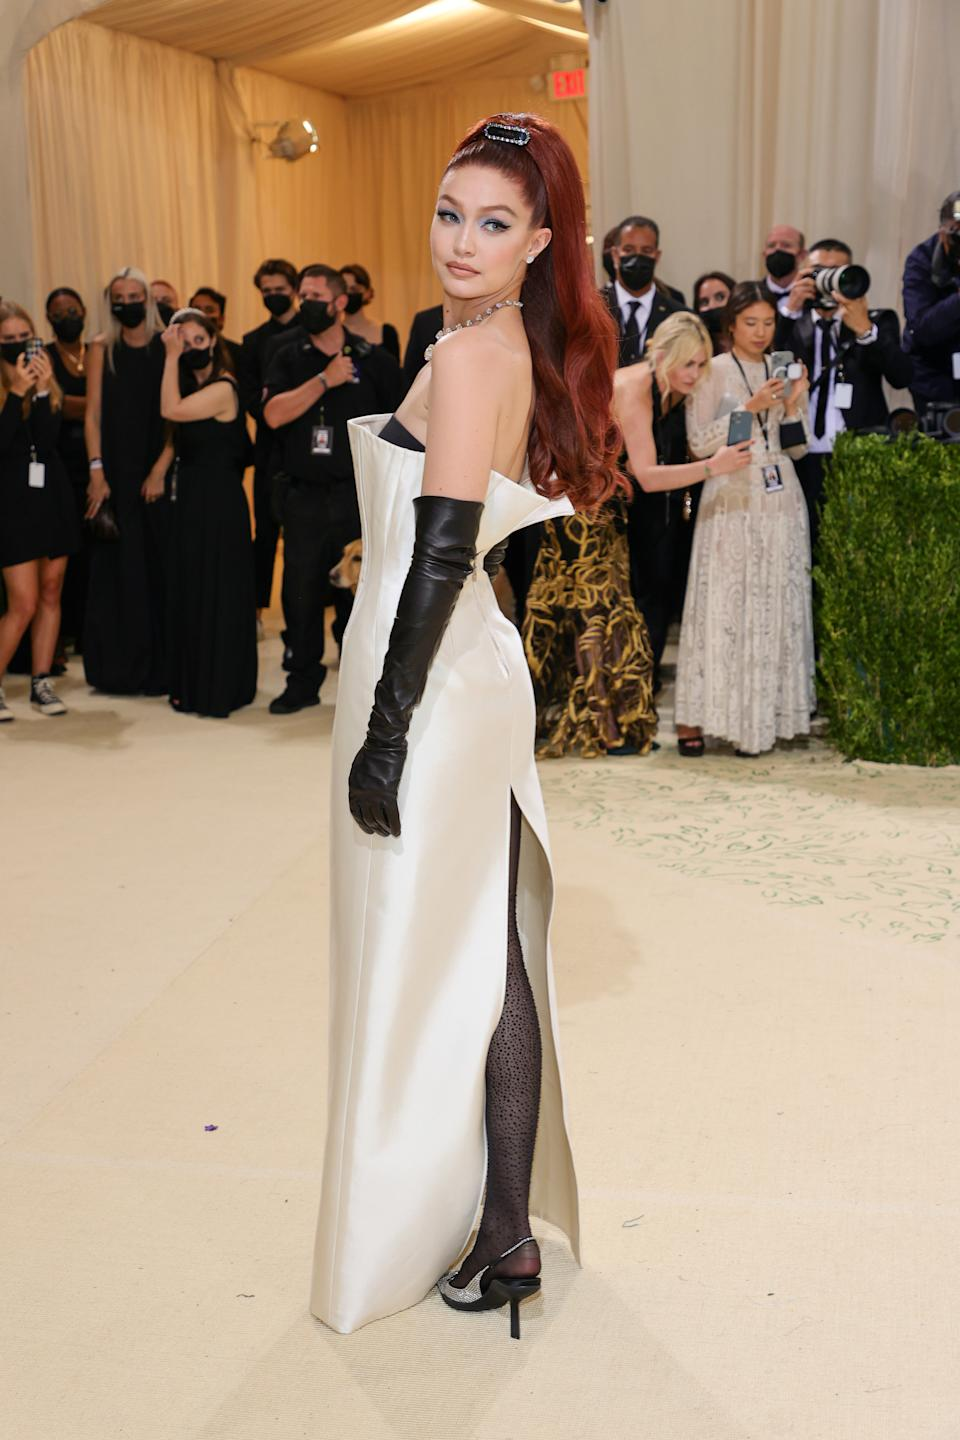 Gigi Hadid attends The 2021 Met Gala Celebrating In America: A Lexicon Of Fashion at Metropolitan Museum of Art on September 13, 2021 in New York City. (Getty Images)